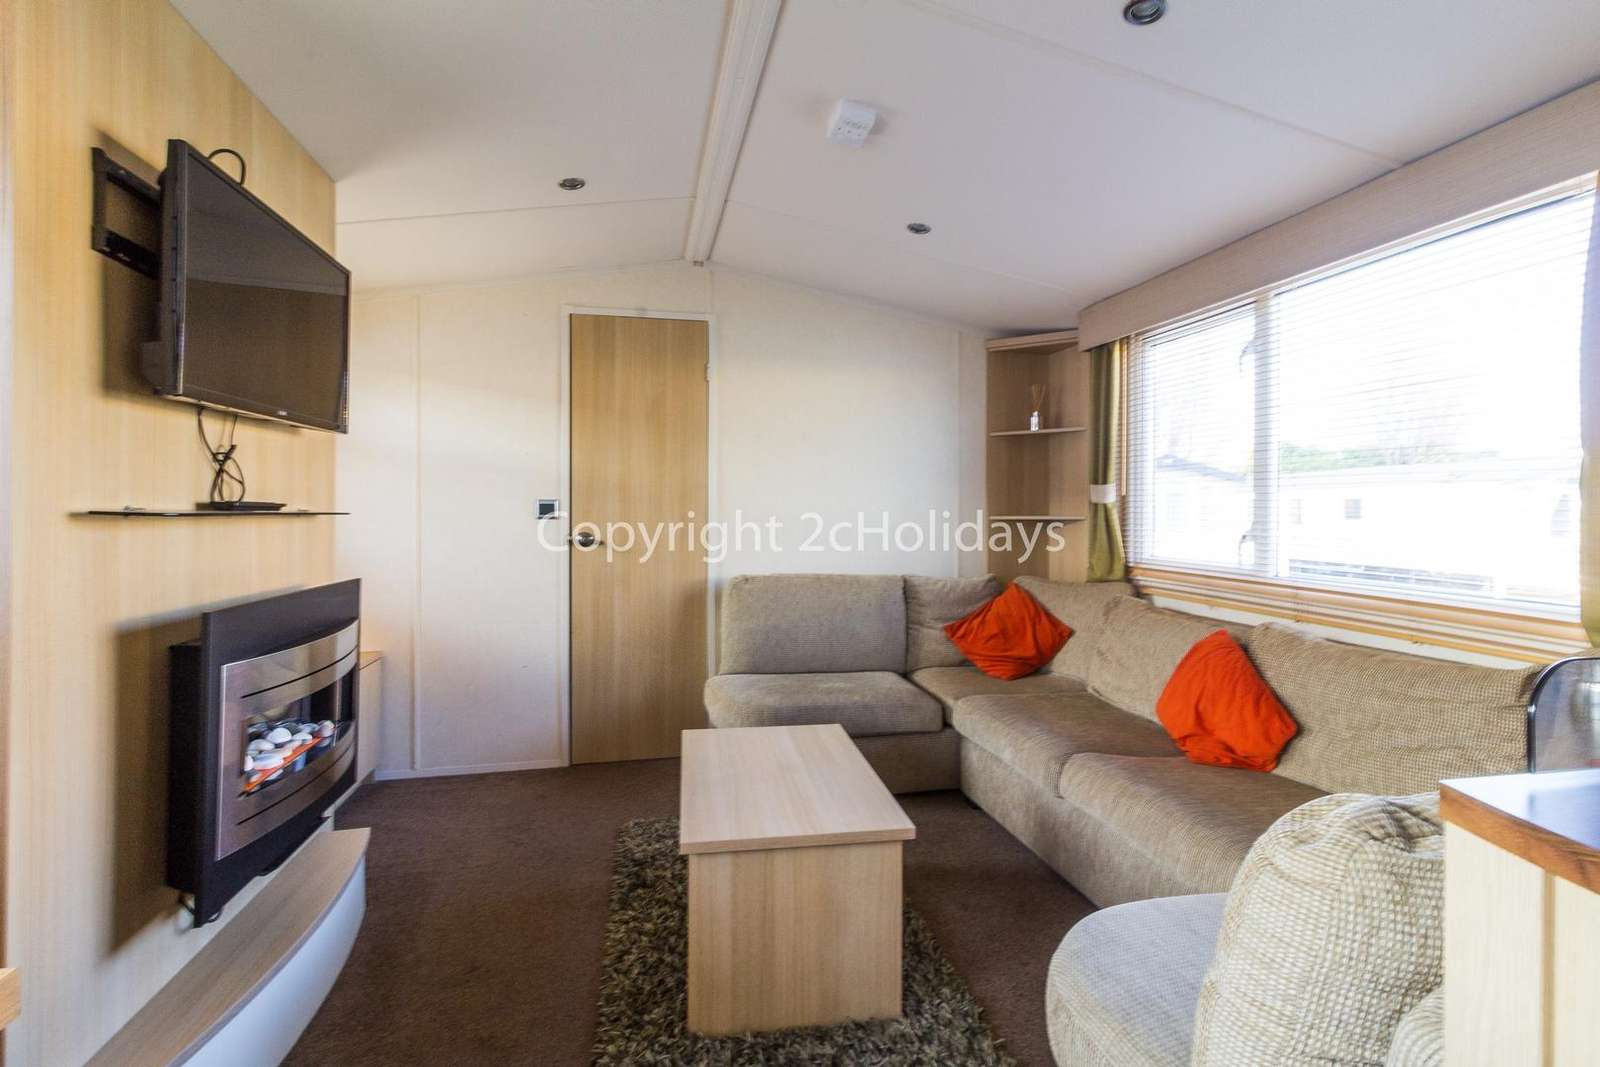 Cosy lounge area with a TV/DVD player